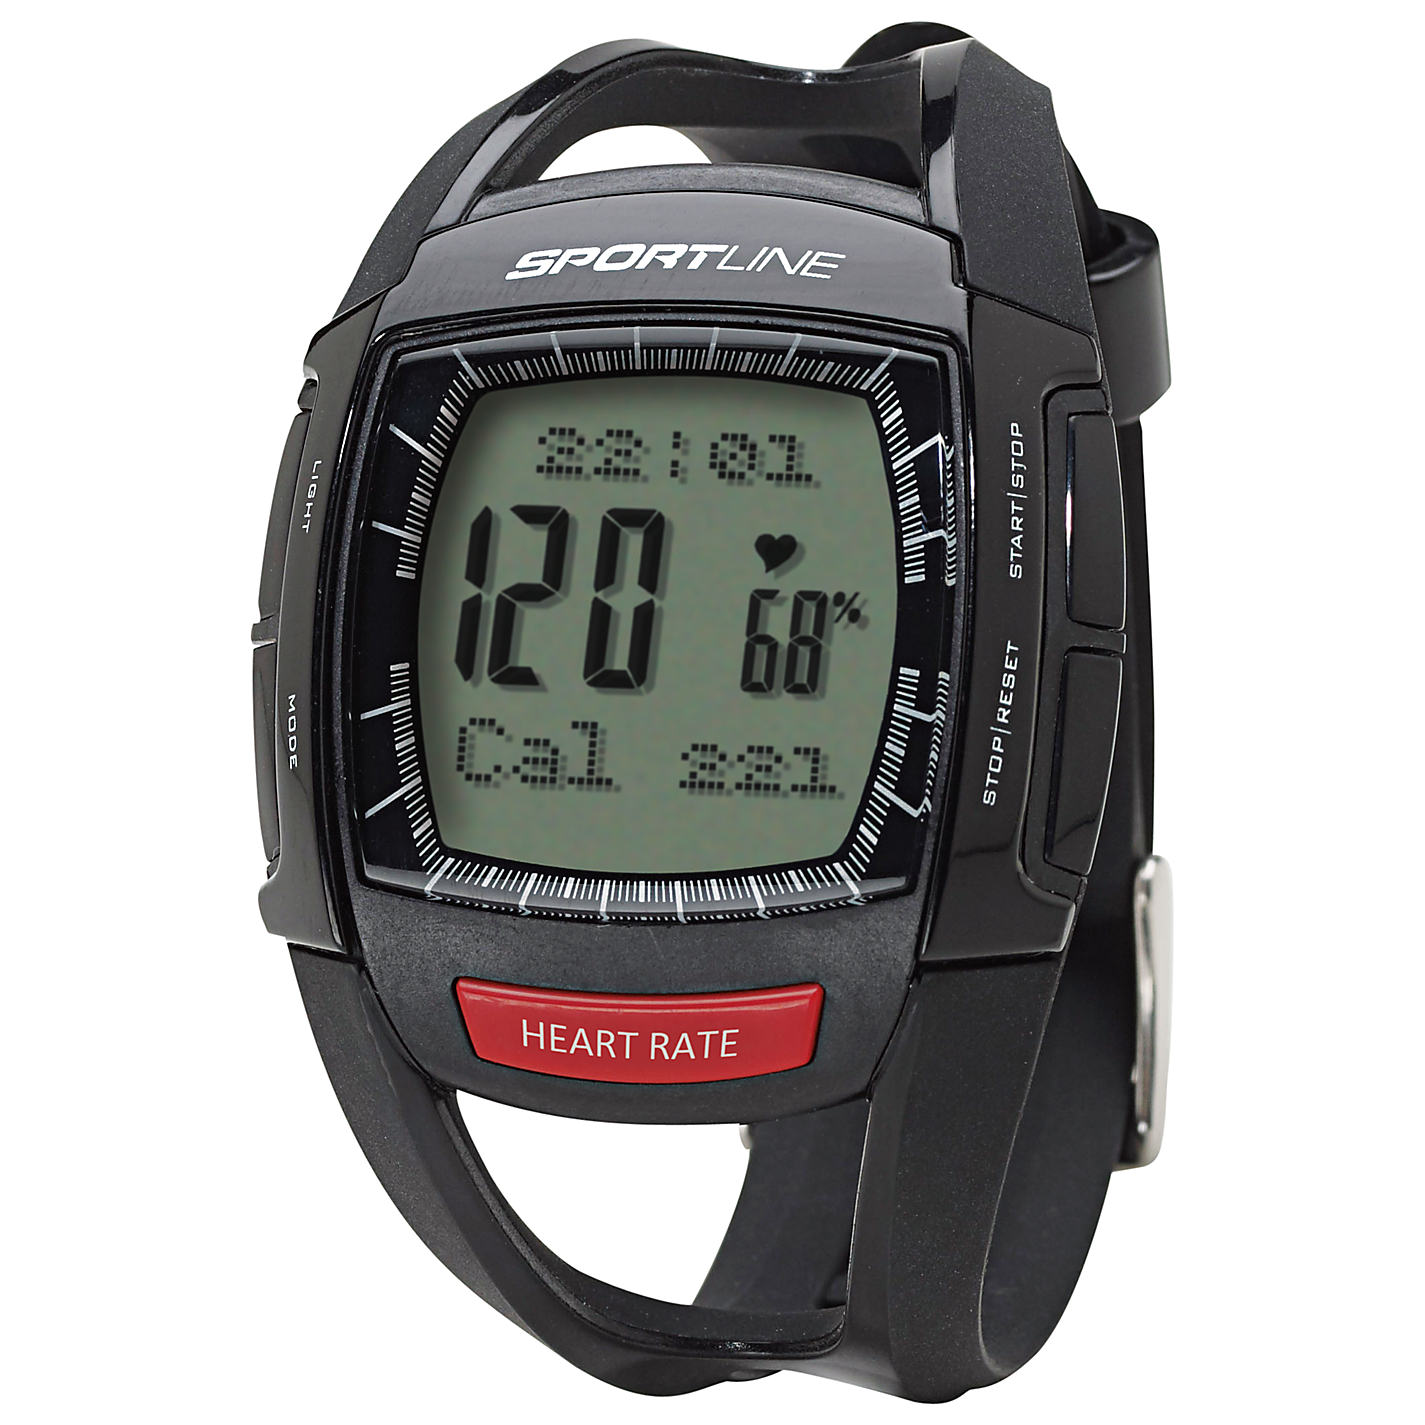 Sportline 660 Men's Cardio Heart Rate Watch Instruction Manual